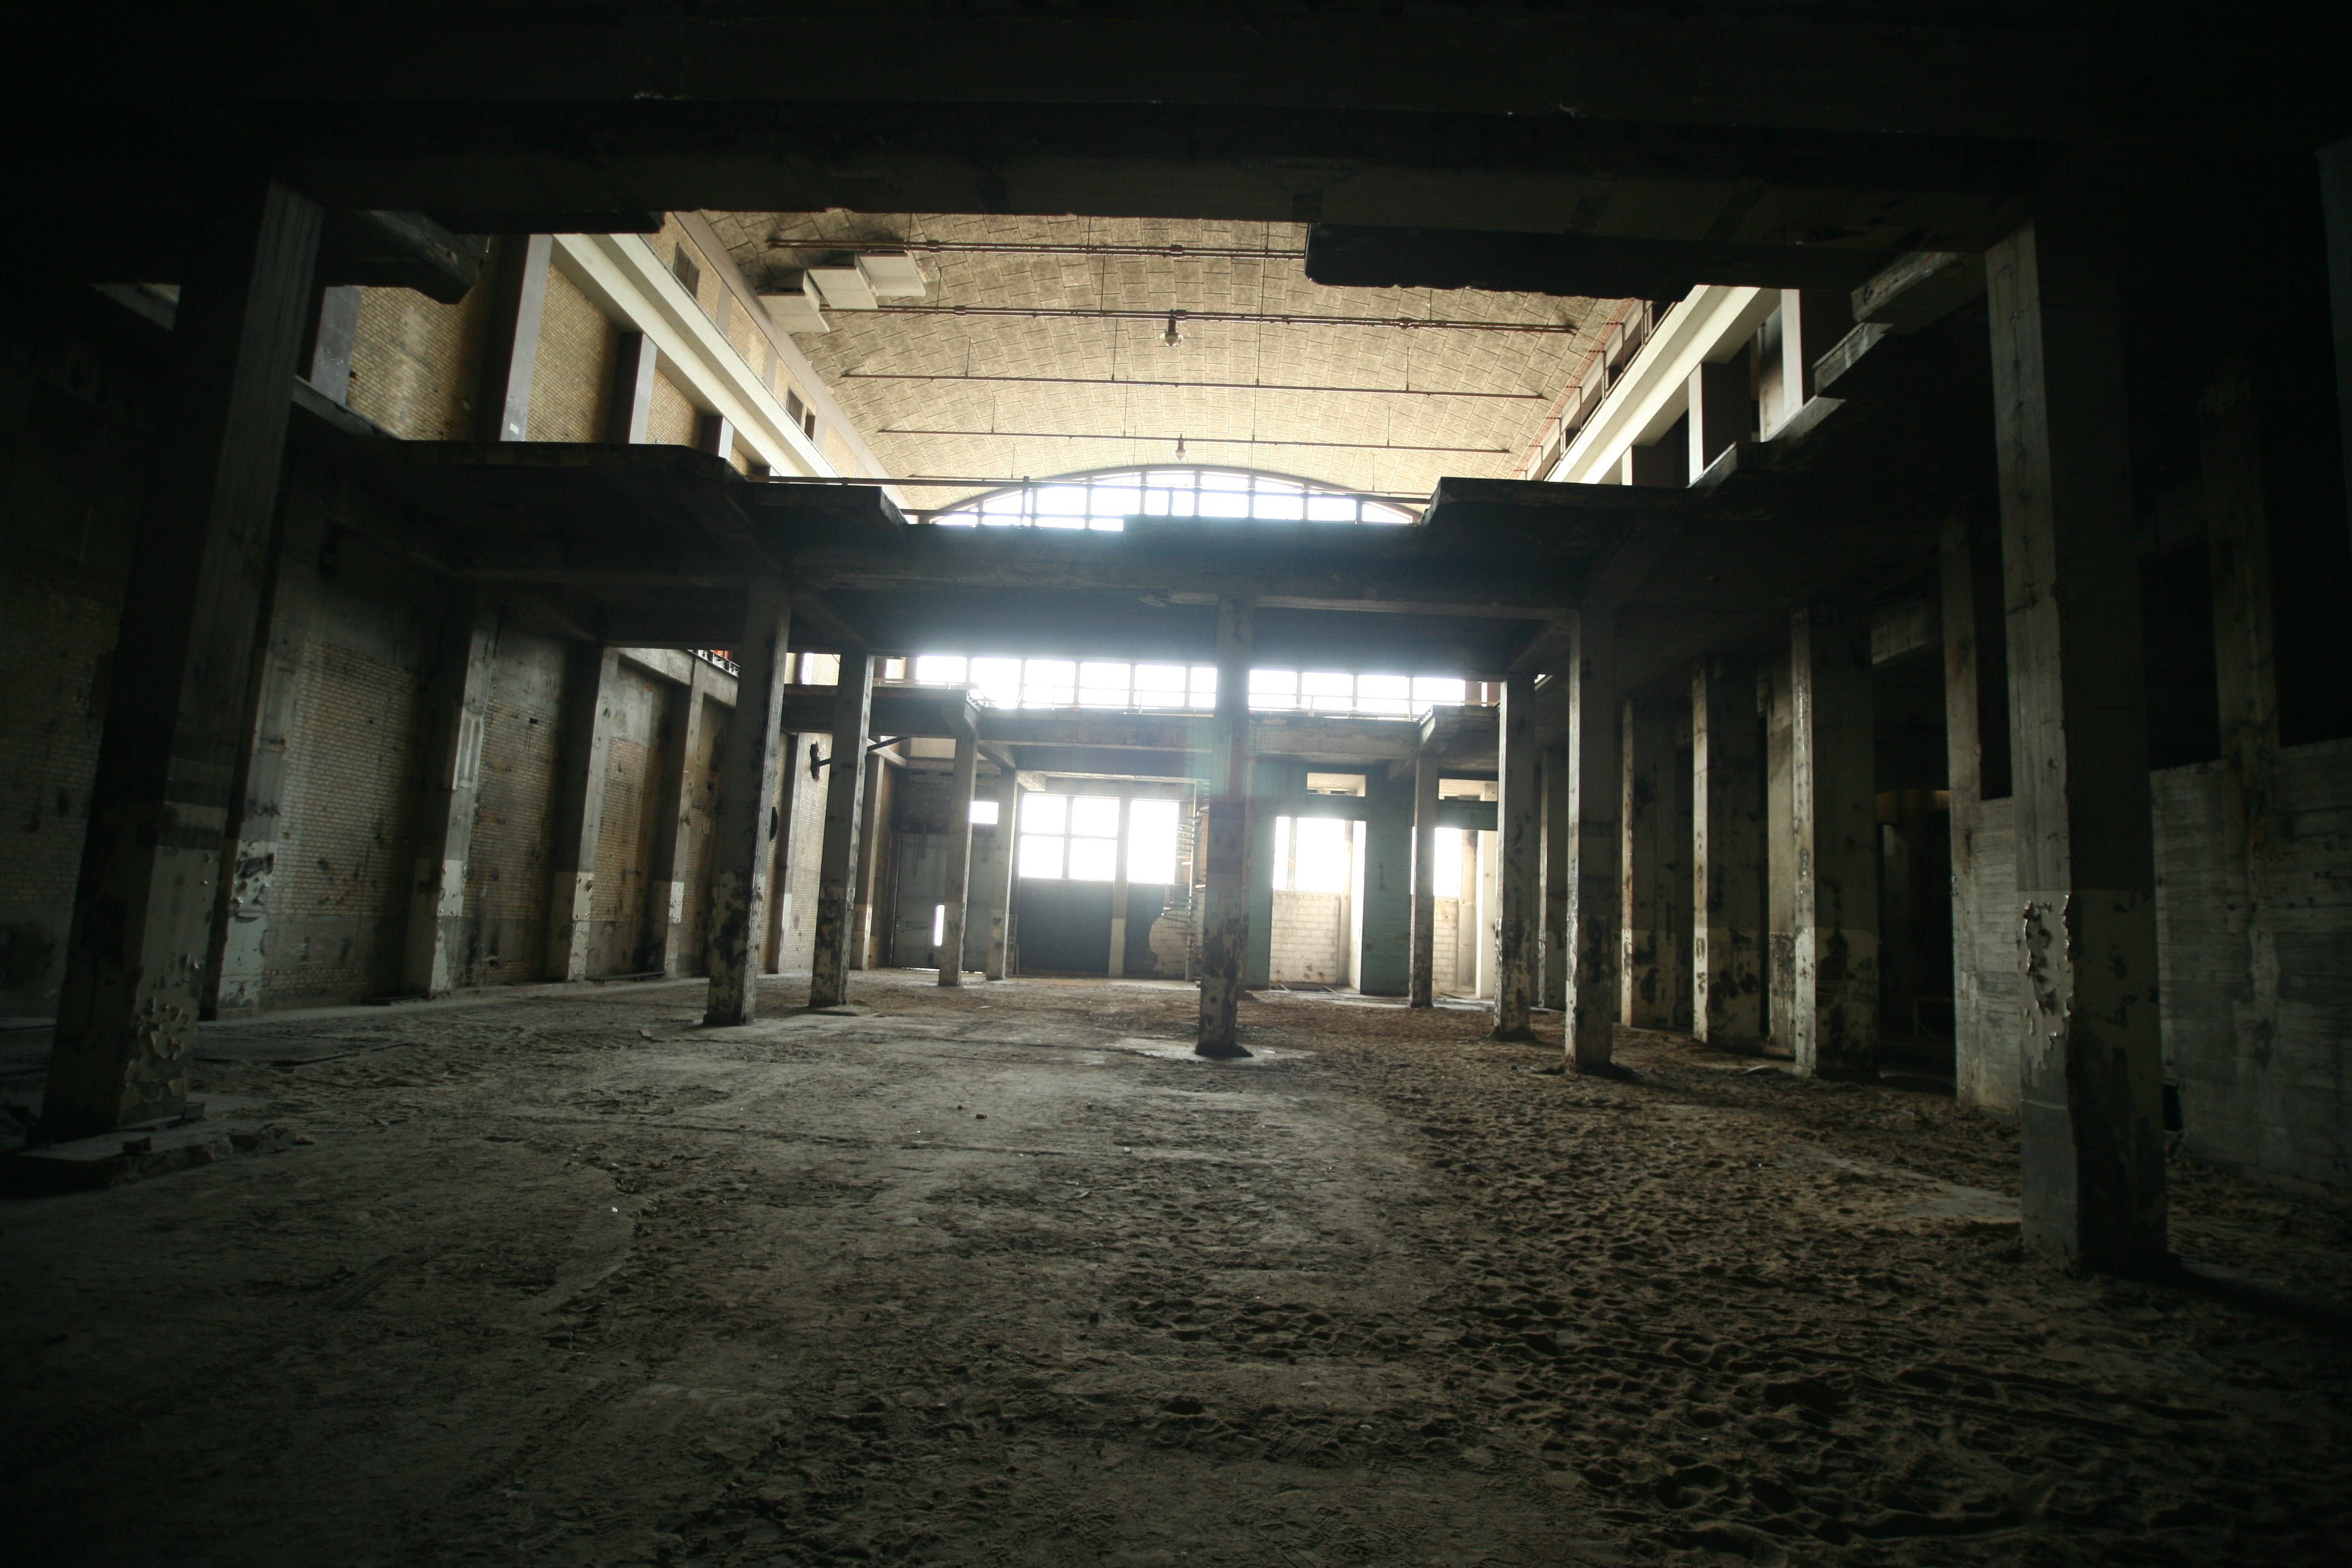 Photograph of Abandoned Concrete Structure